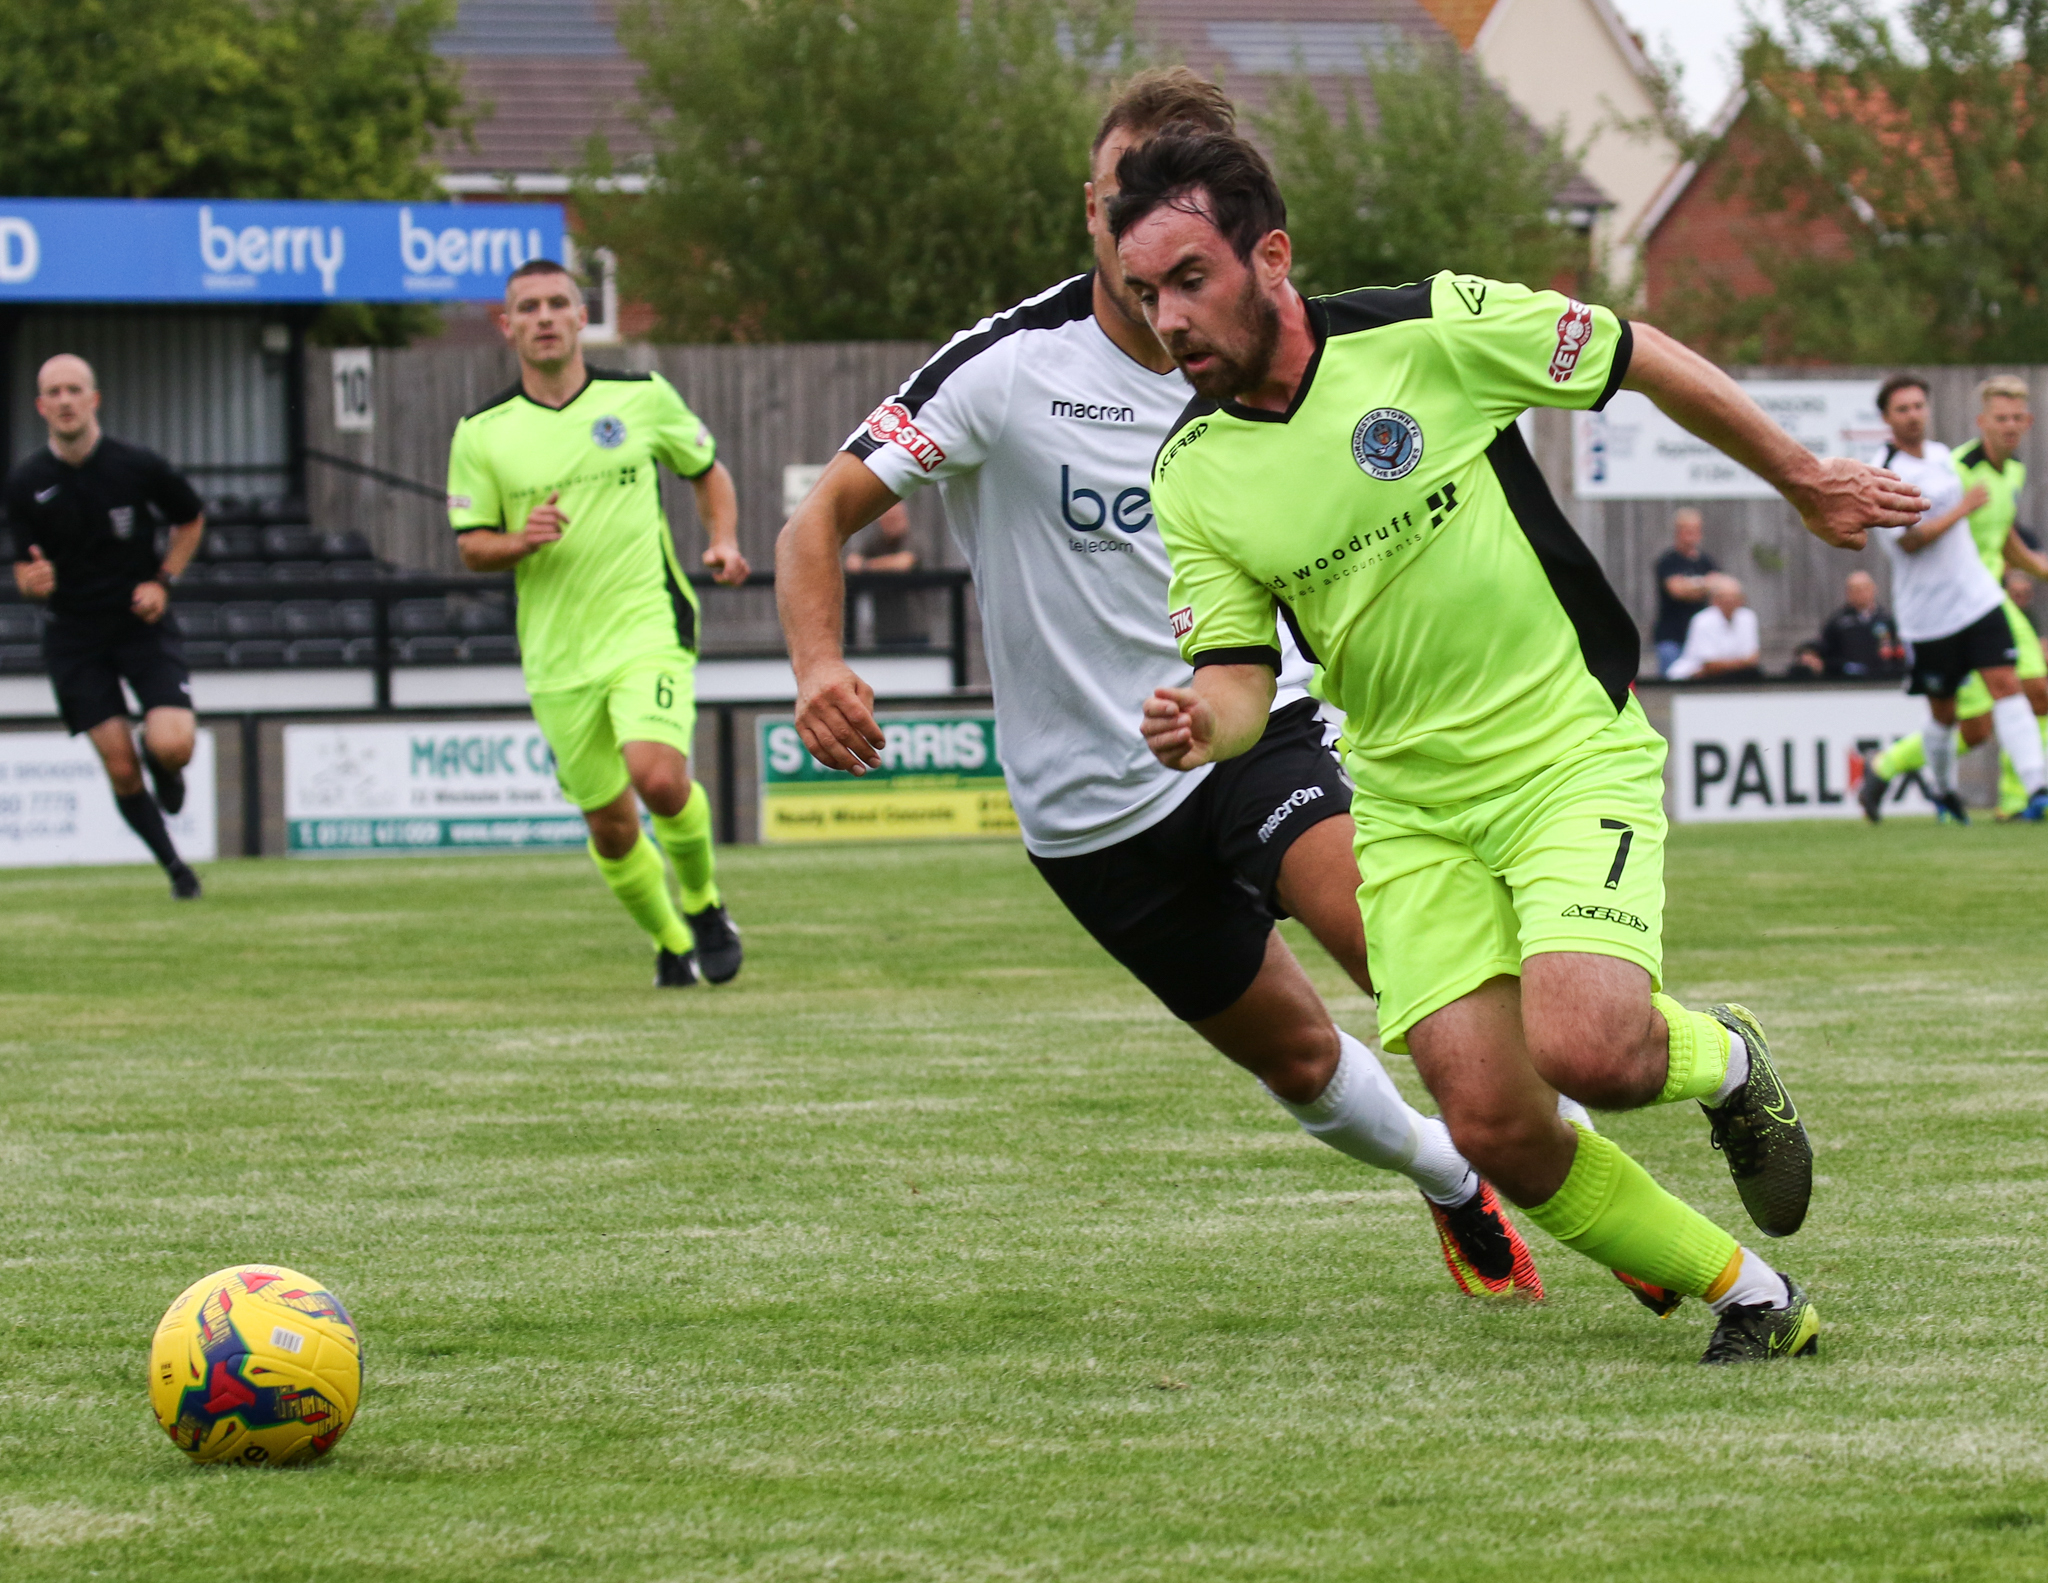 SALISBURY LOSS: Dorchester were defeated 3-0 at Salisbury                    Picture: PHIL STANDFIELD